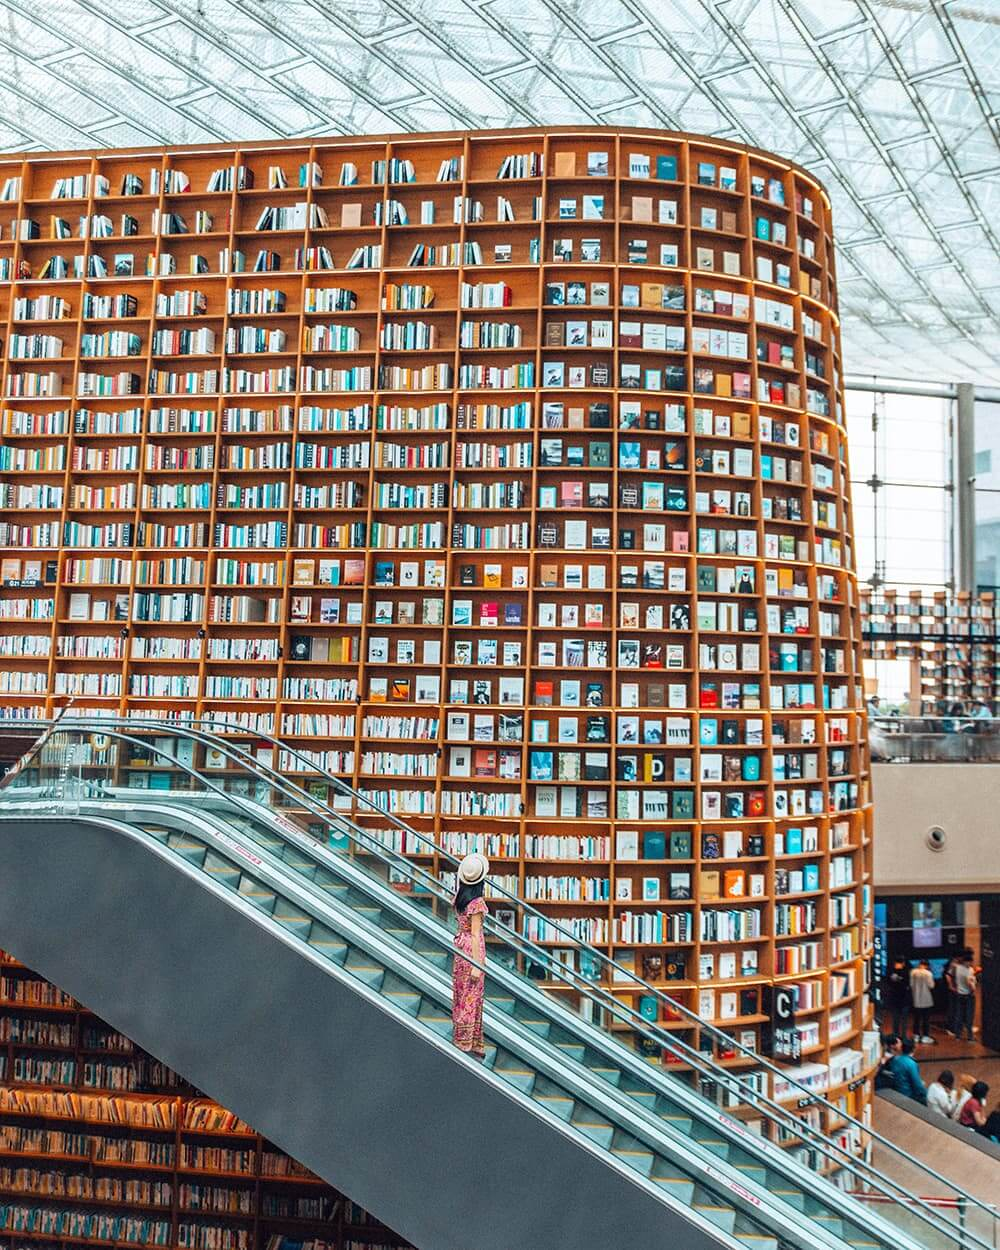 Starfield Library in South Korea - The Diary of a Nomad